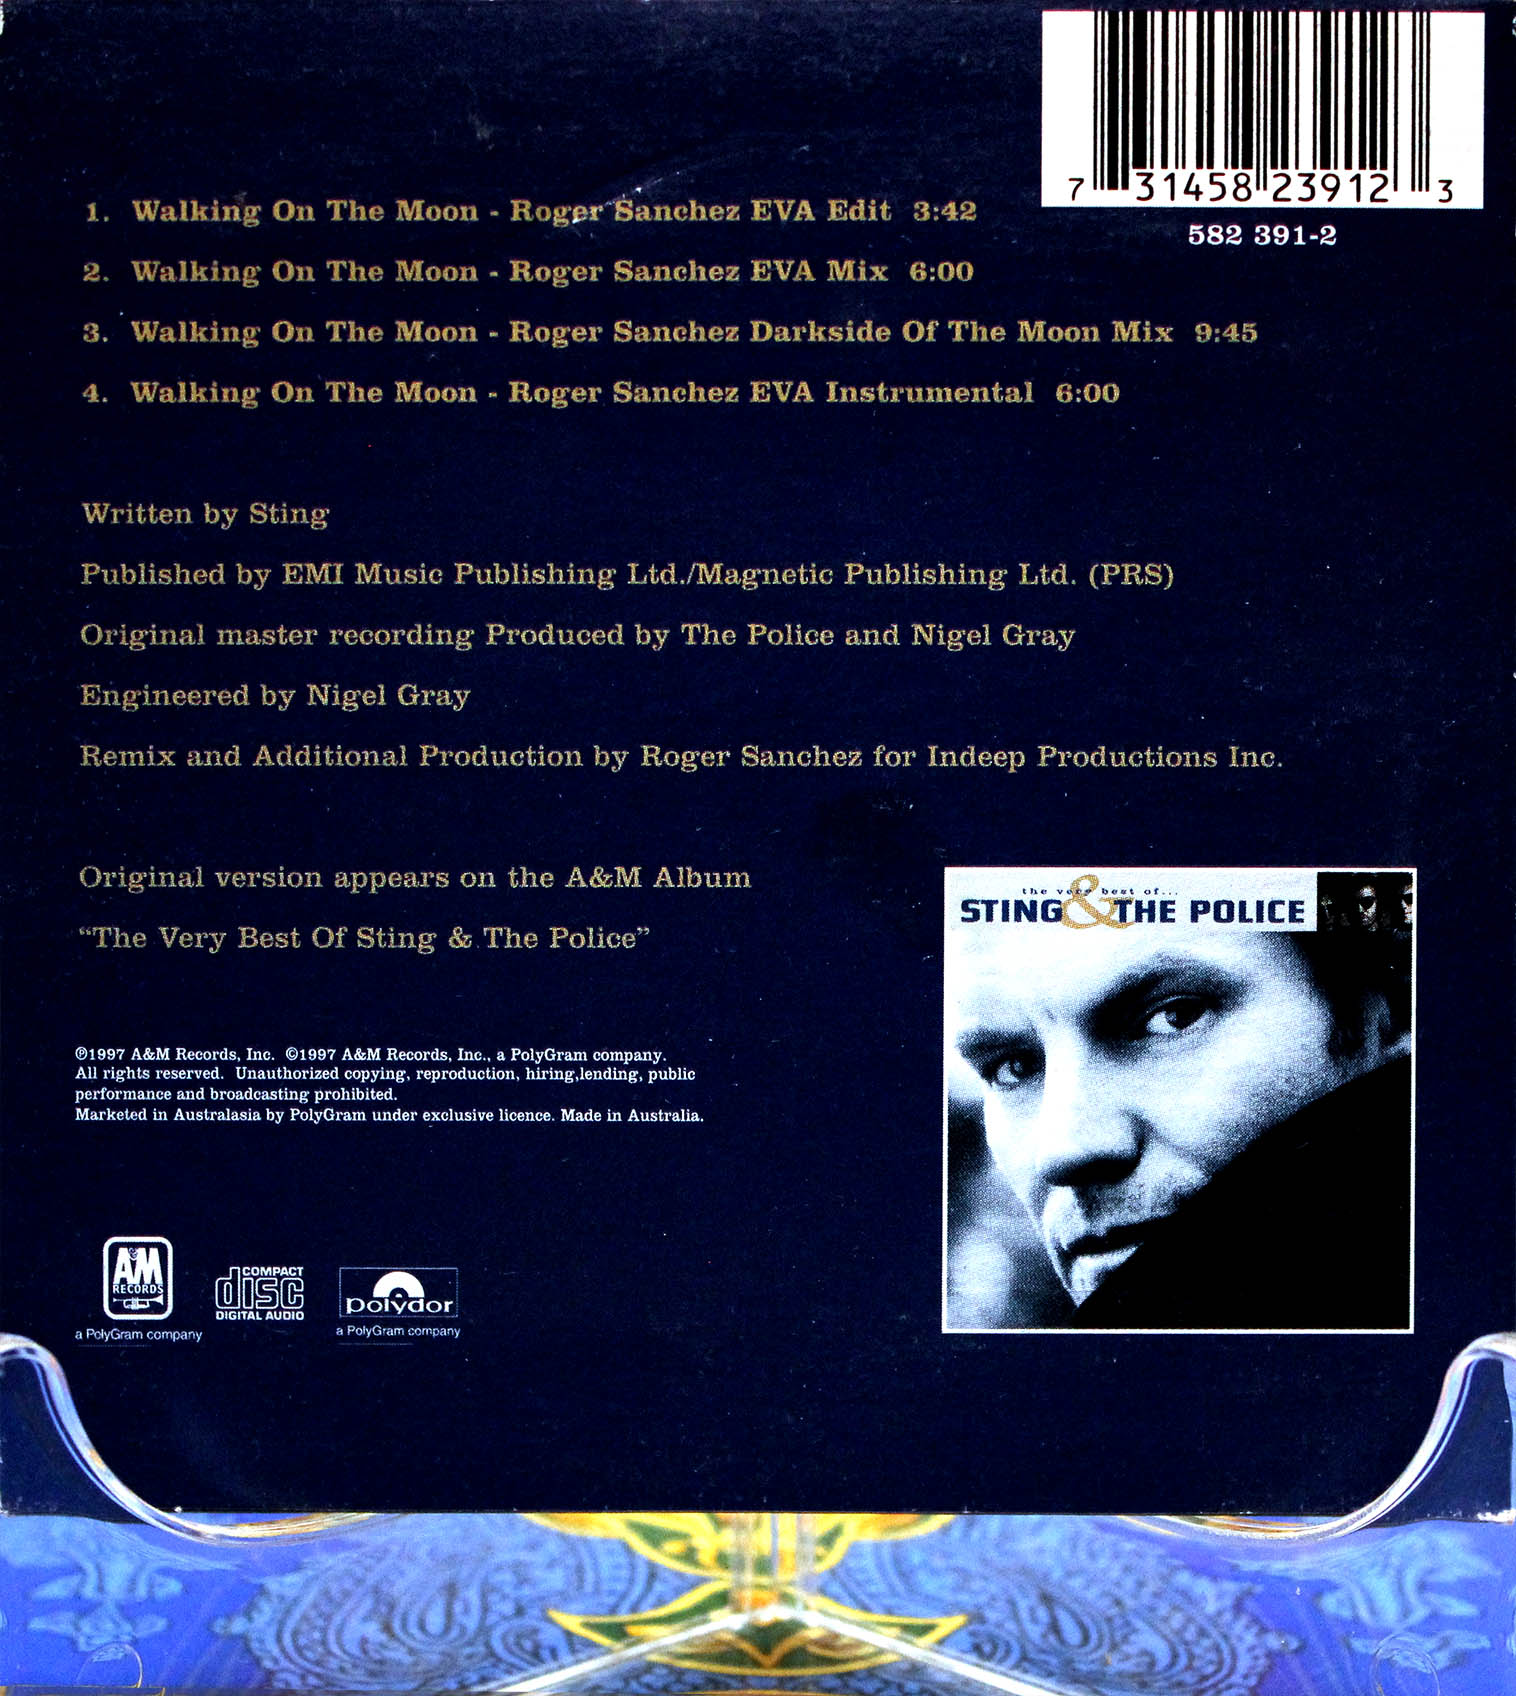 The police walking on the moon 02